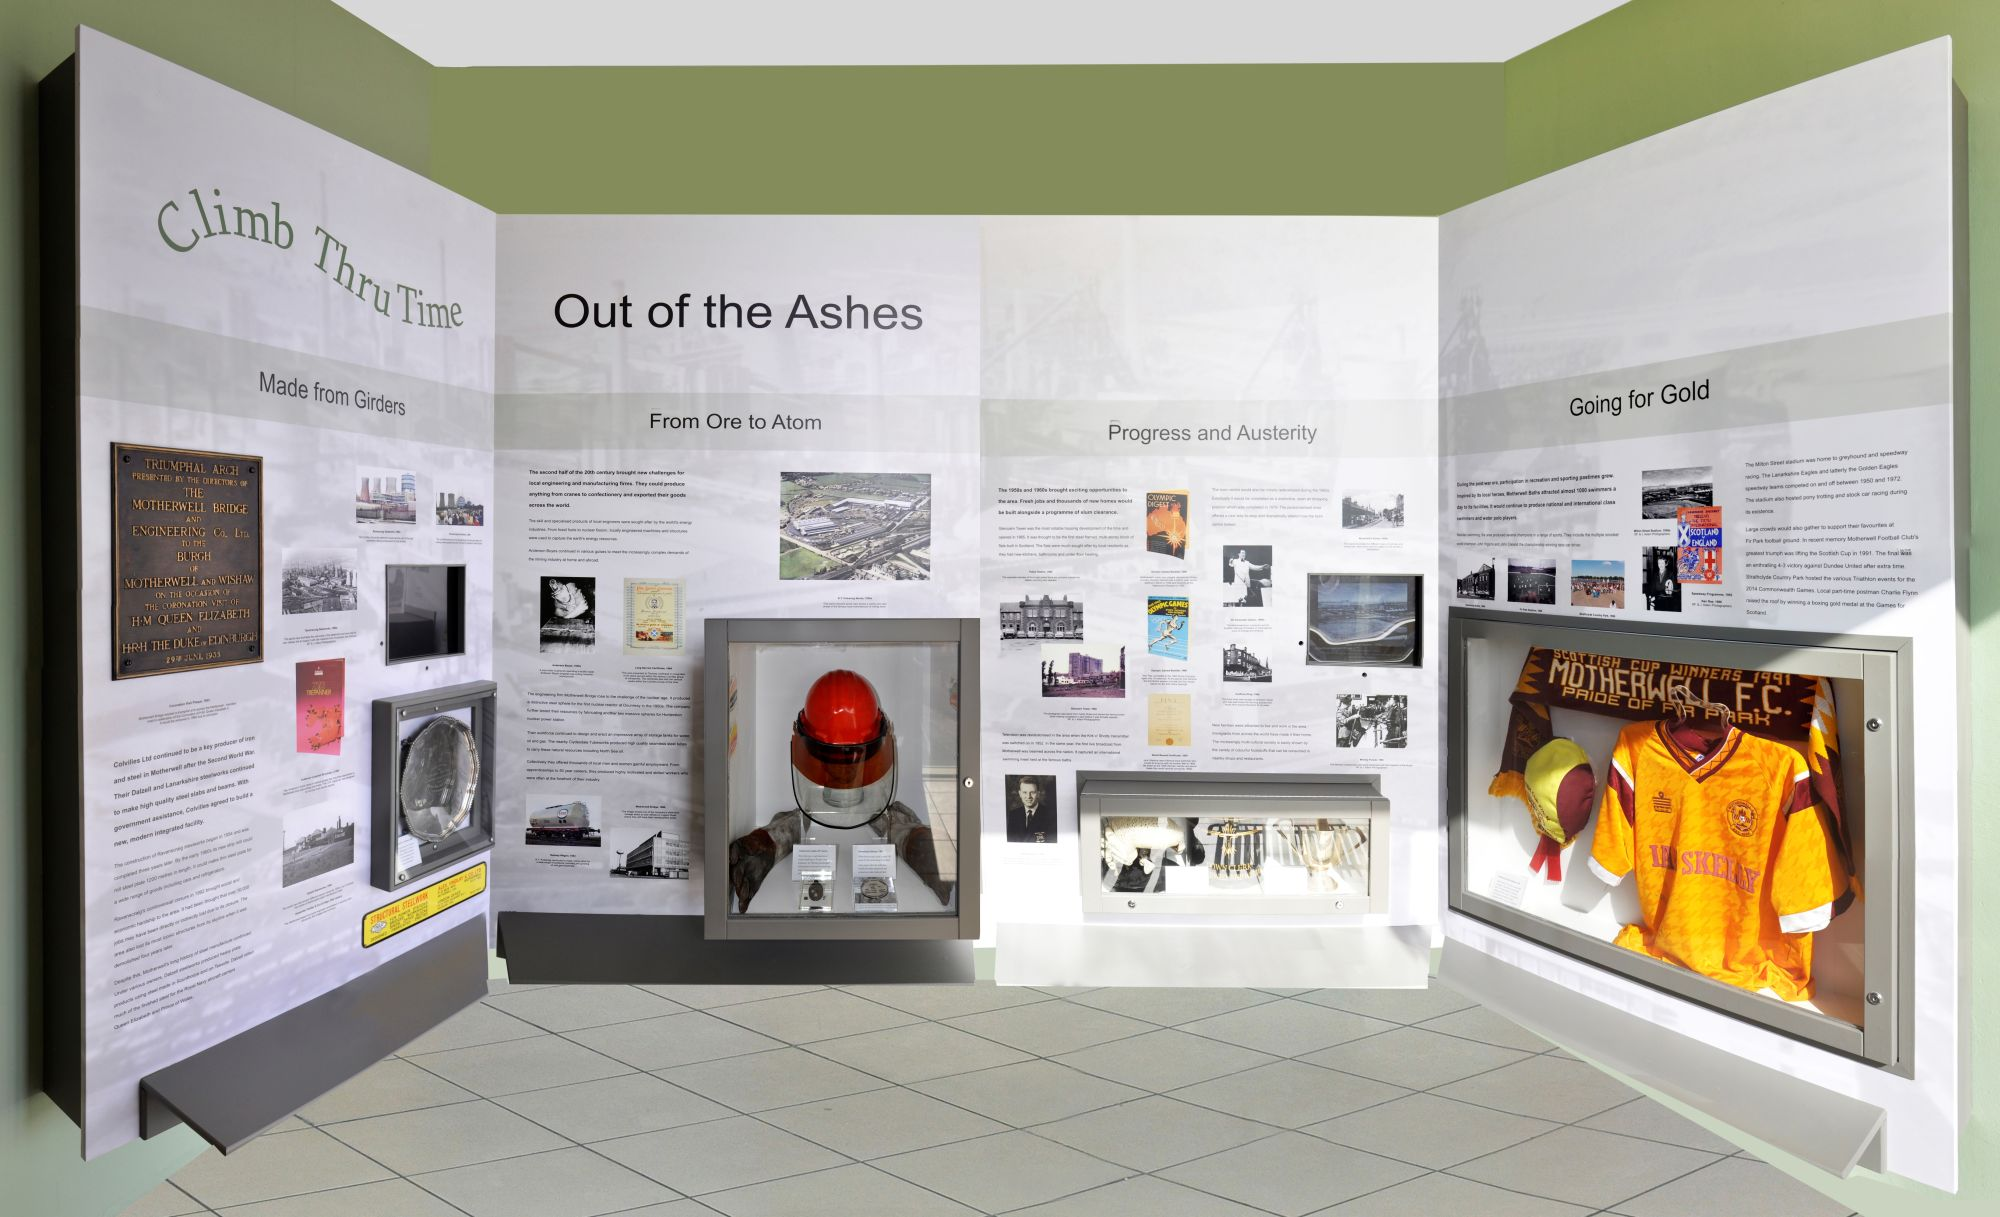 Photograph showing Climb Thru Time Level 3: Out of the Ashes exhibit